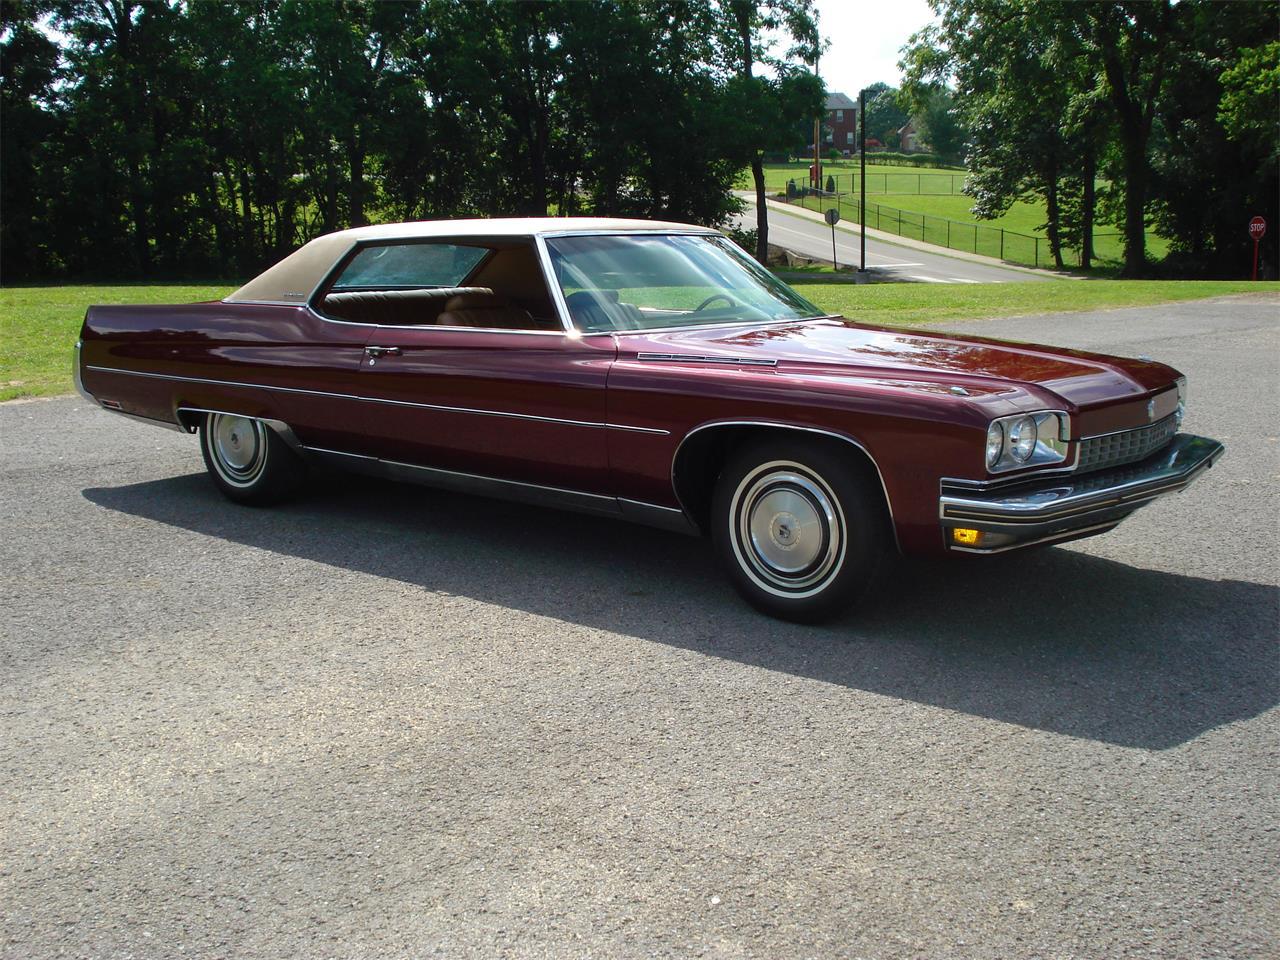 In House Financing Car Dealers >> 1973 Buick Electra 225 for Sale | ClassicCars.com | CC-1233950